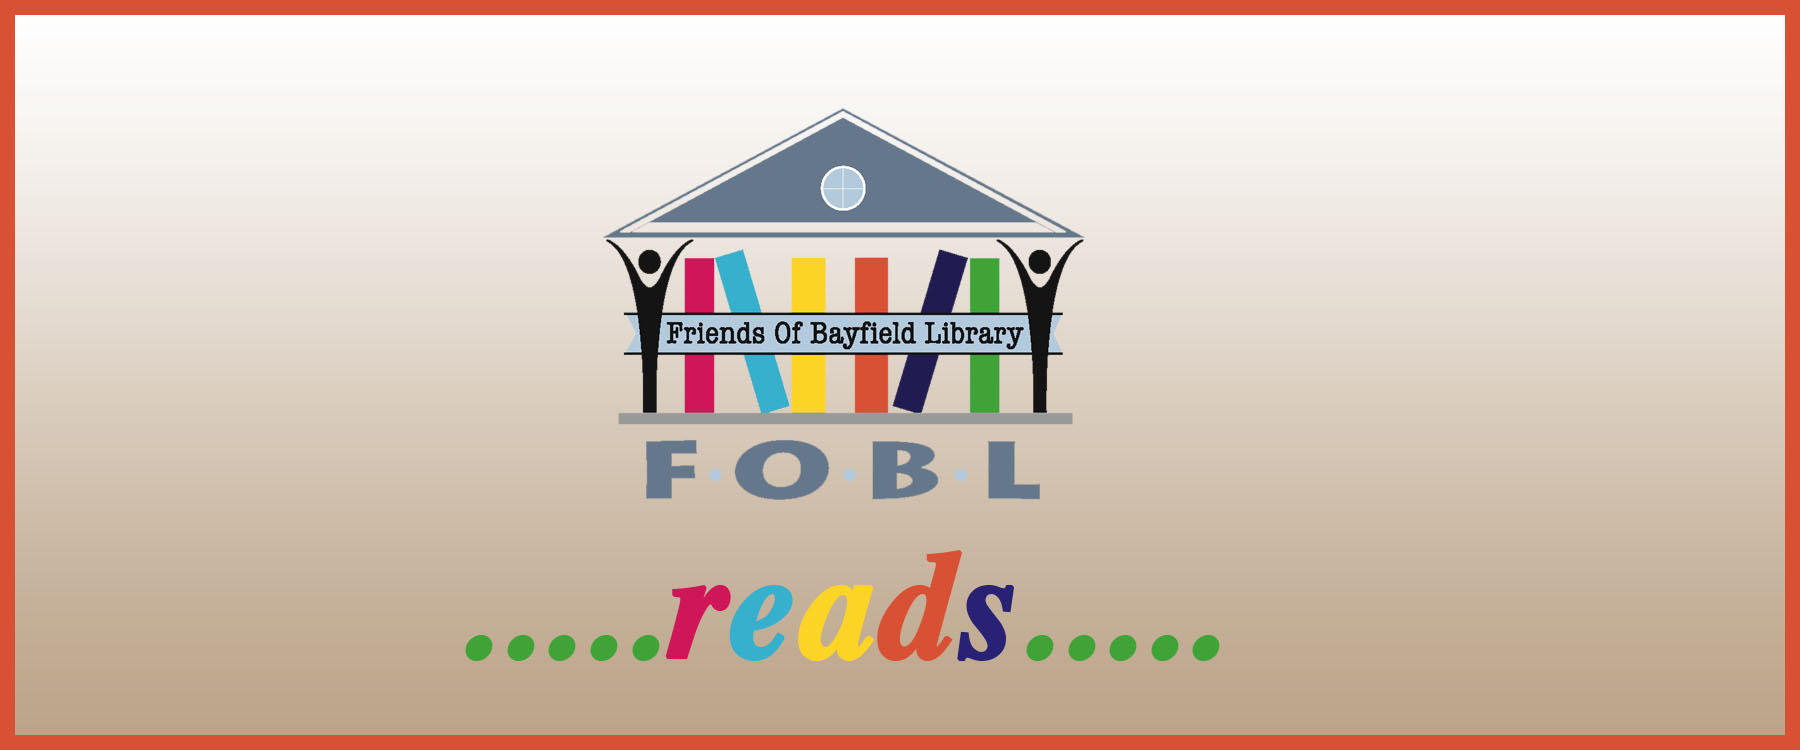 FOBL Book Reviews